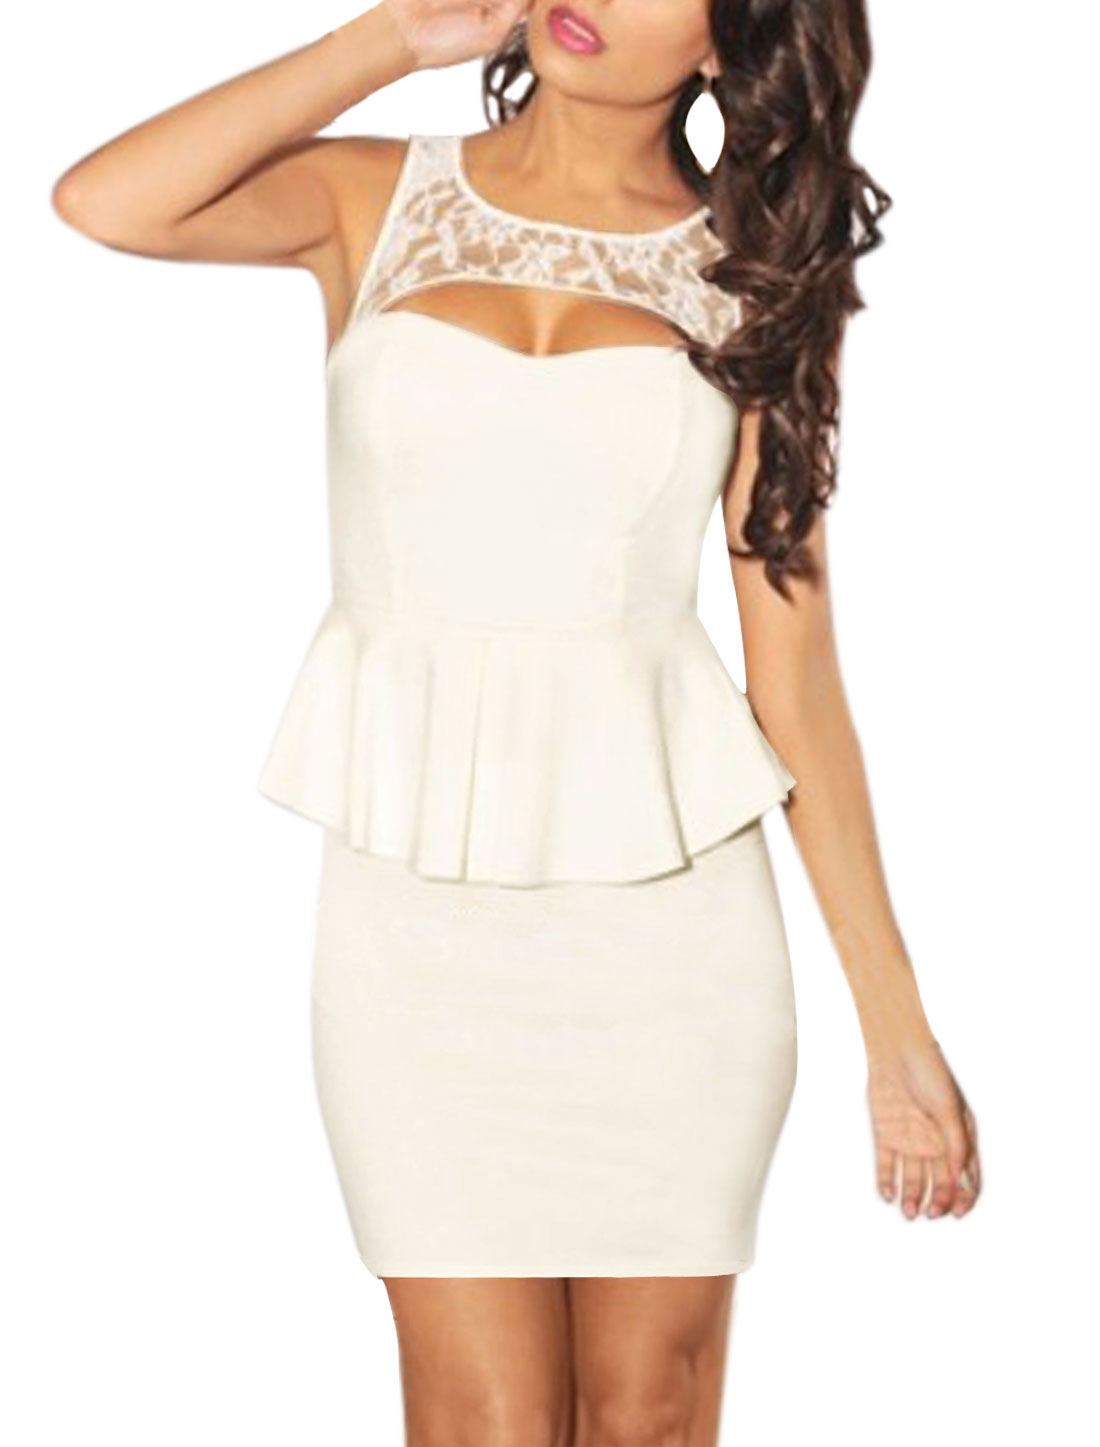 Women Clubwear Cut Out Lace Panel Sleeveless Peplum Dress White XS